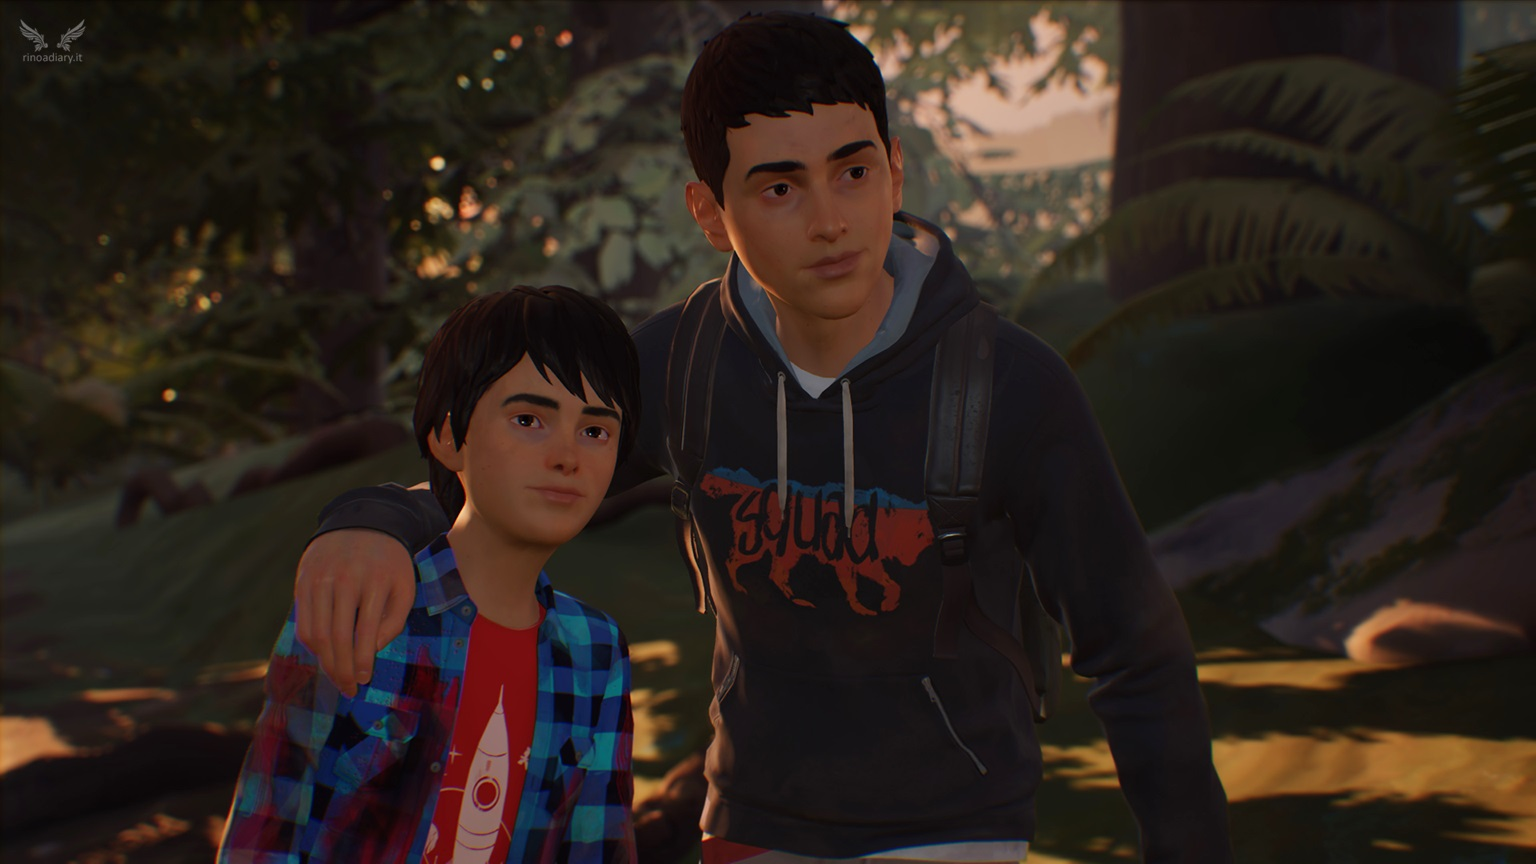 Il trailer di lancio di Life is Strange 2!